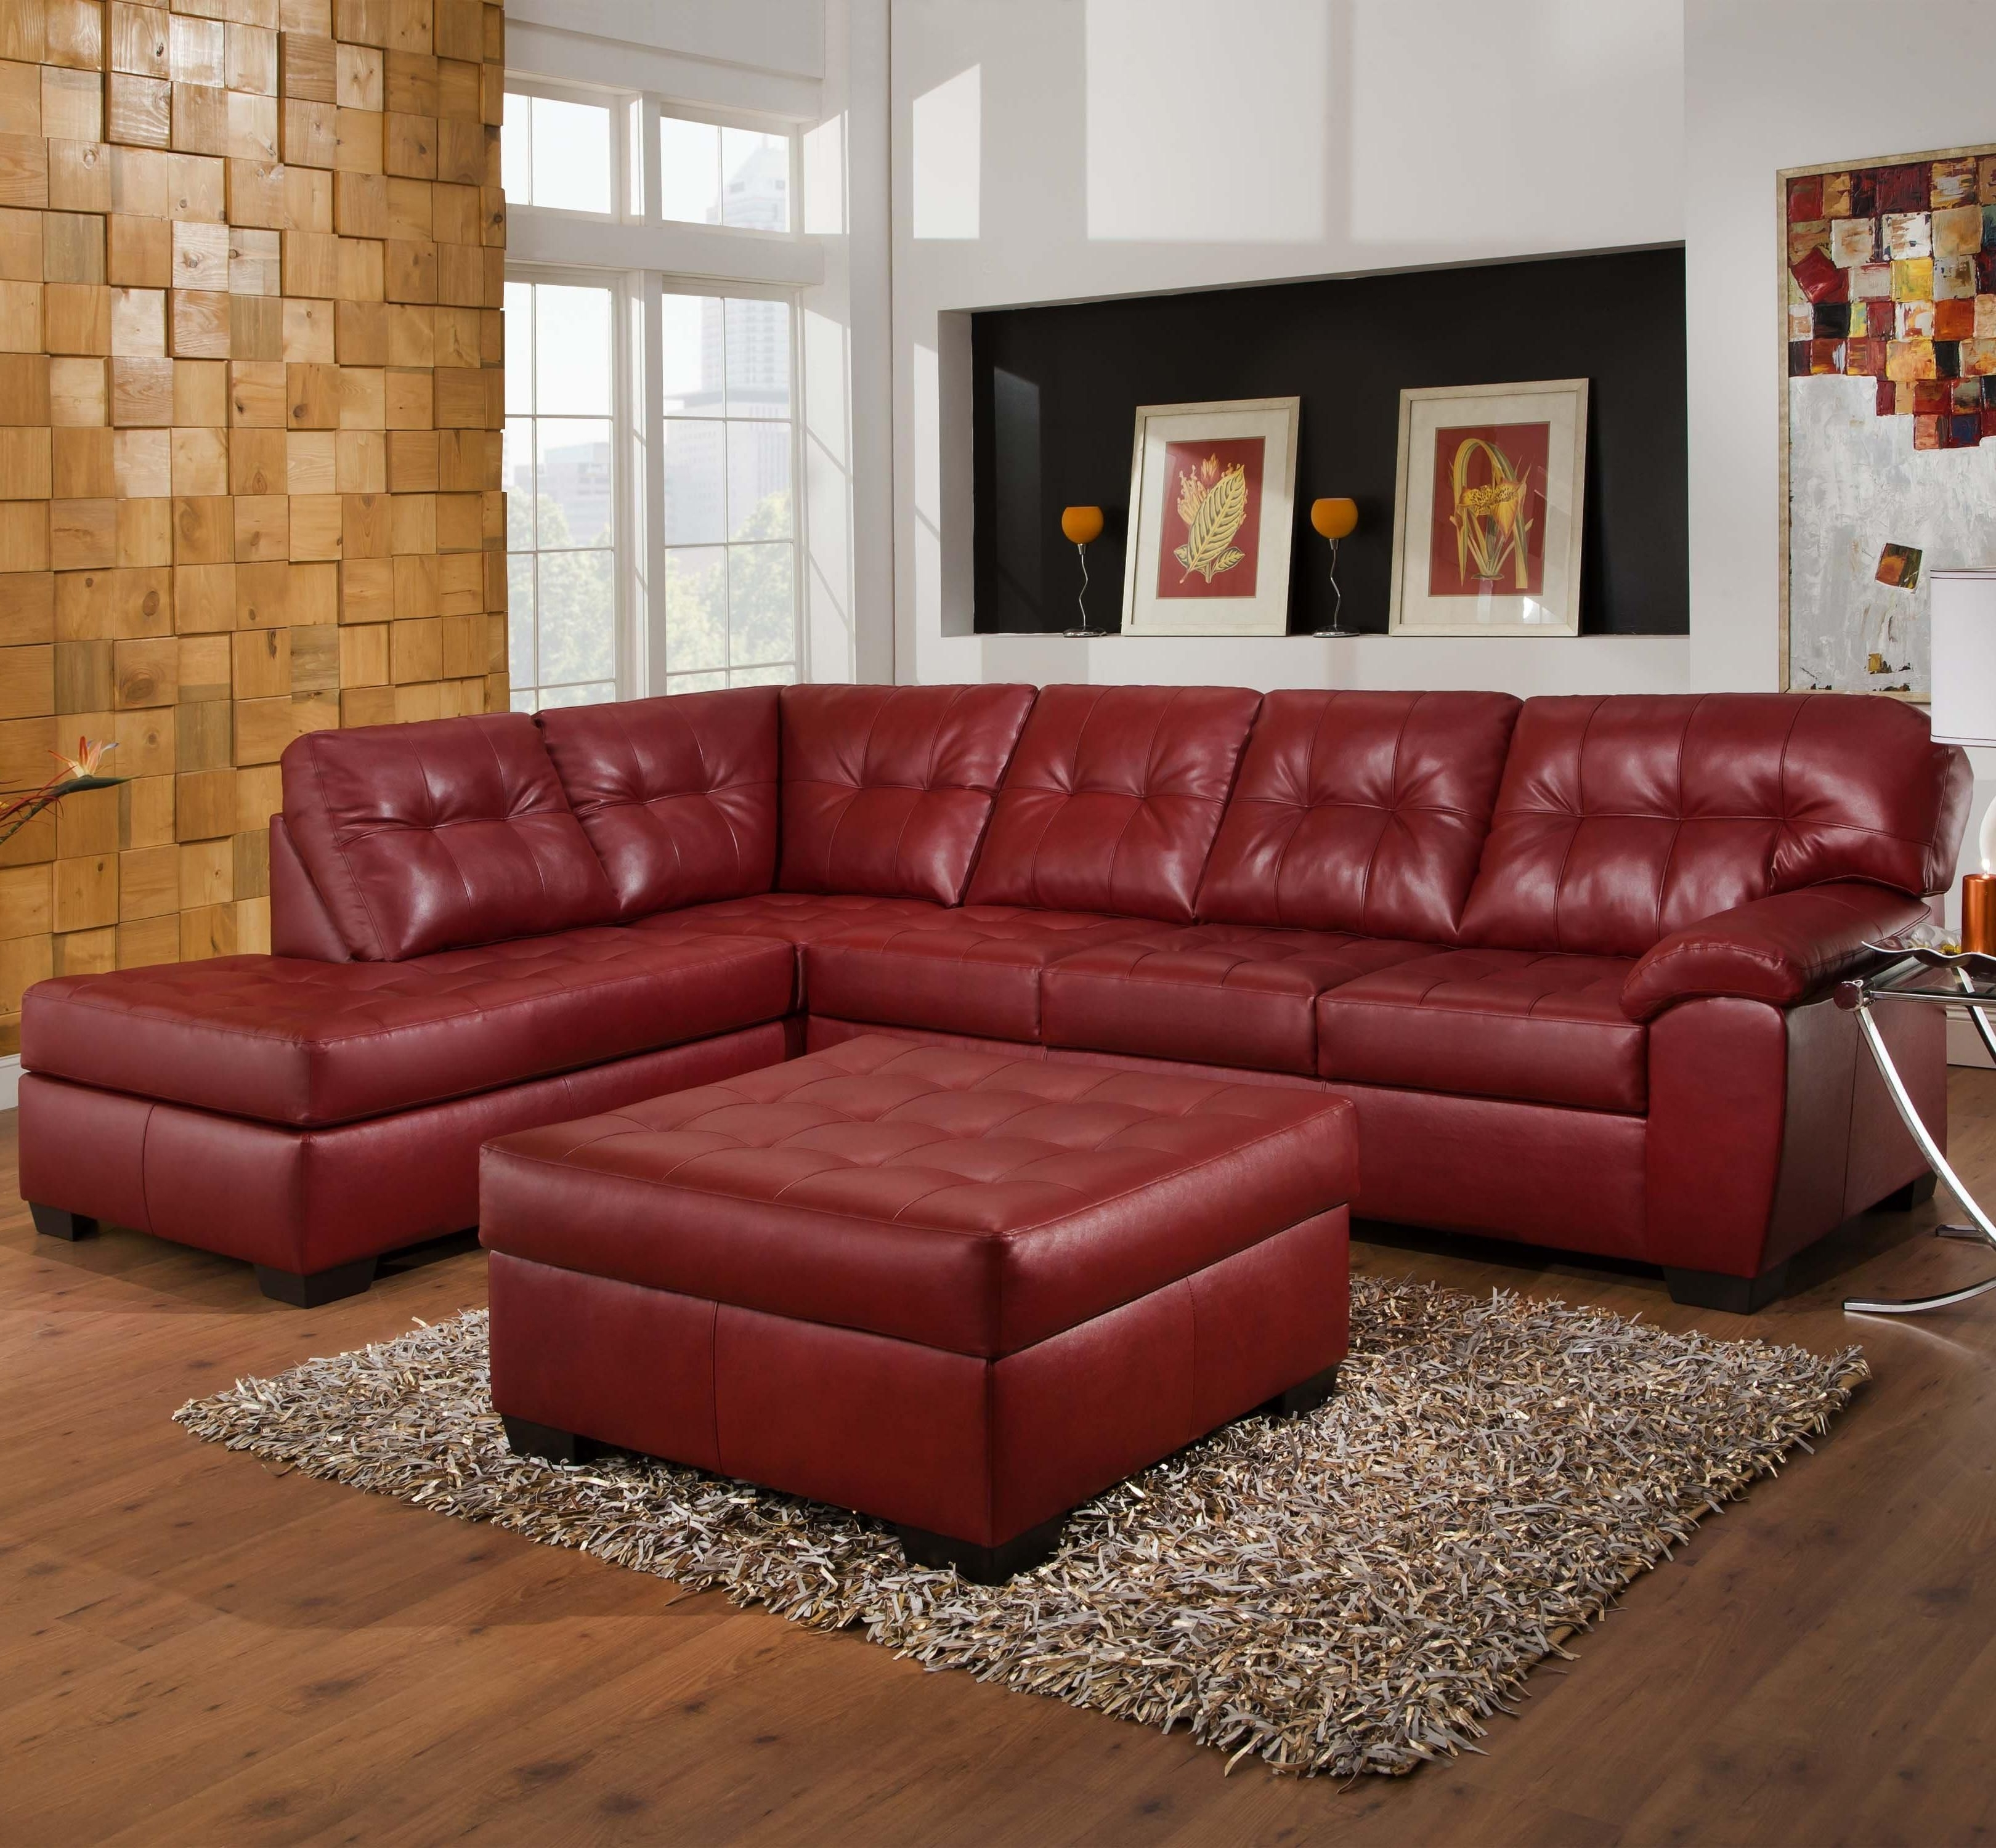 9569 2 Piece Sectional With Tufted Seats & Backsimmons intended for Well-known Memphis Tn Sectional Sofas